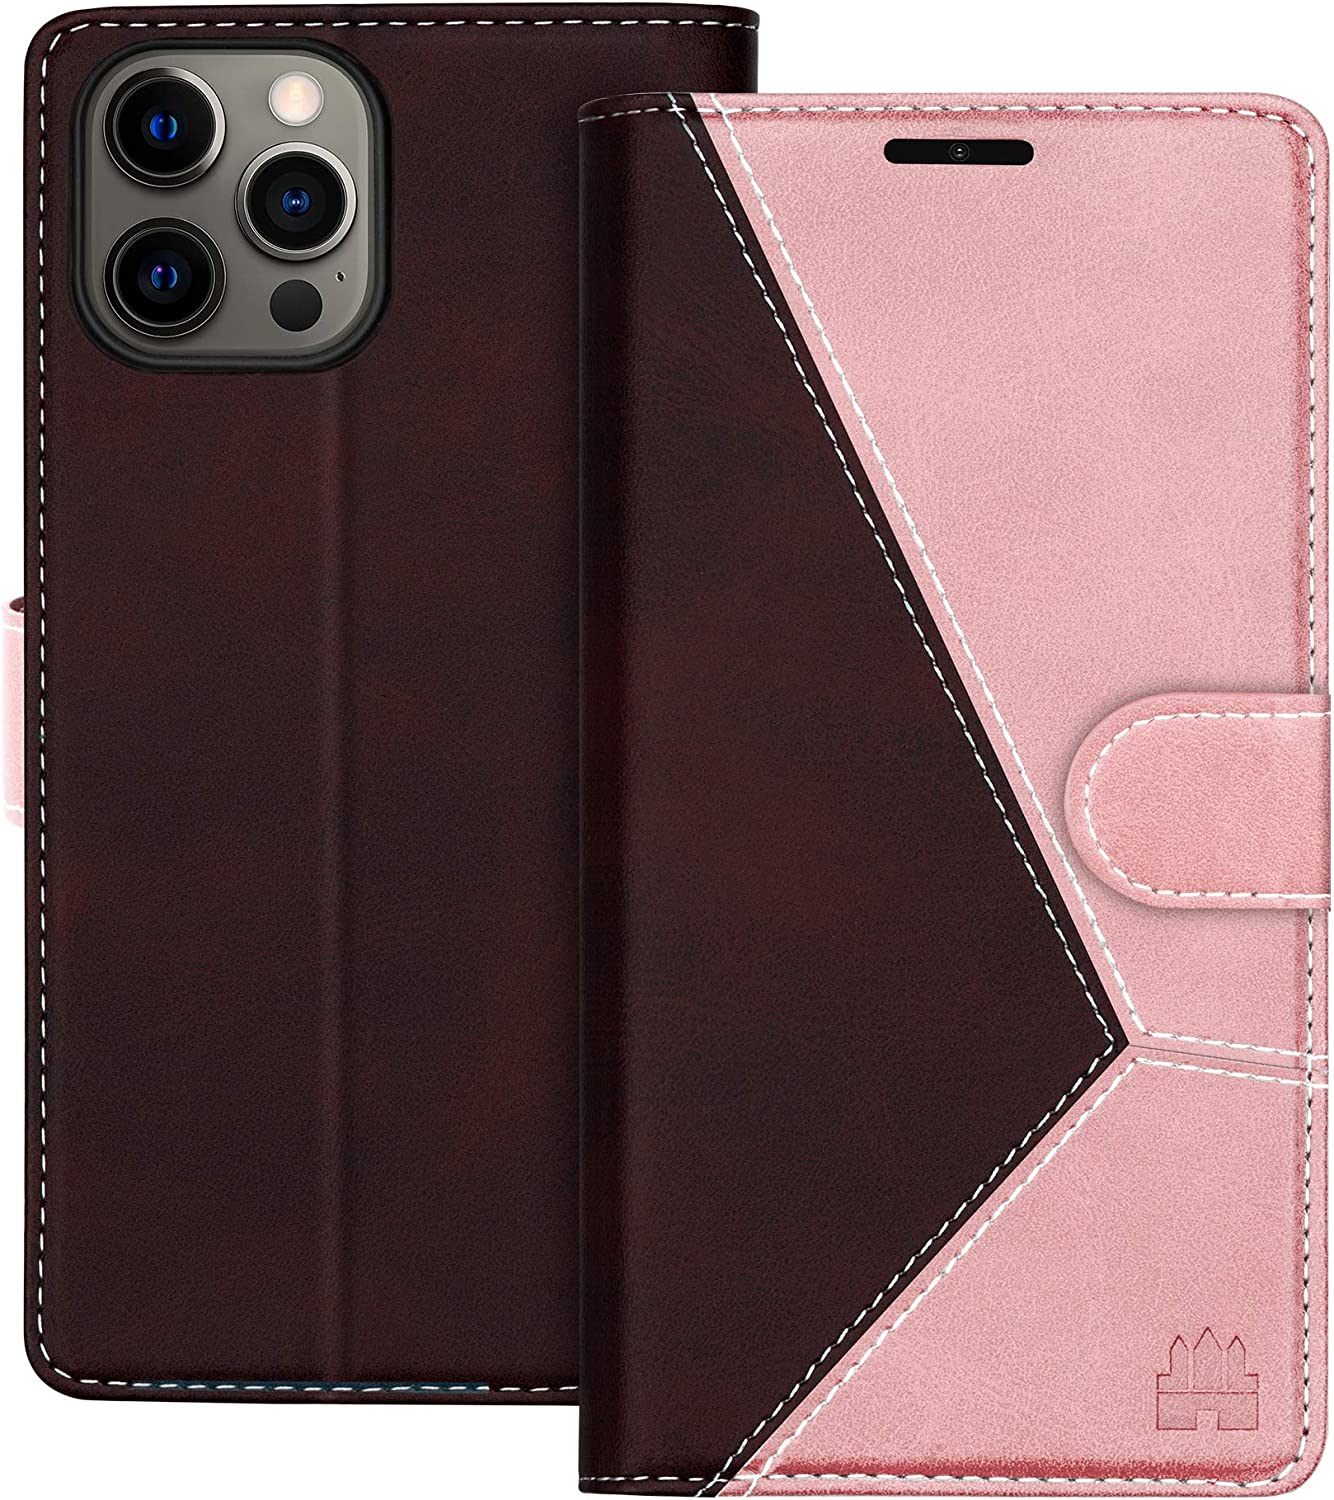 Caislean Compatible with iPhone 12/12 Pro Wallet Case (6.1 inch) PU Leather Flip Cover [RFID Blocking] Credit Card Holder [Soft TPU Shell] [Kickstand Function] Magnetic Full Protection Case, Rose Gold